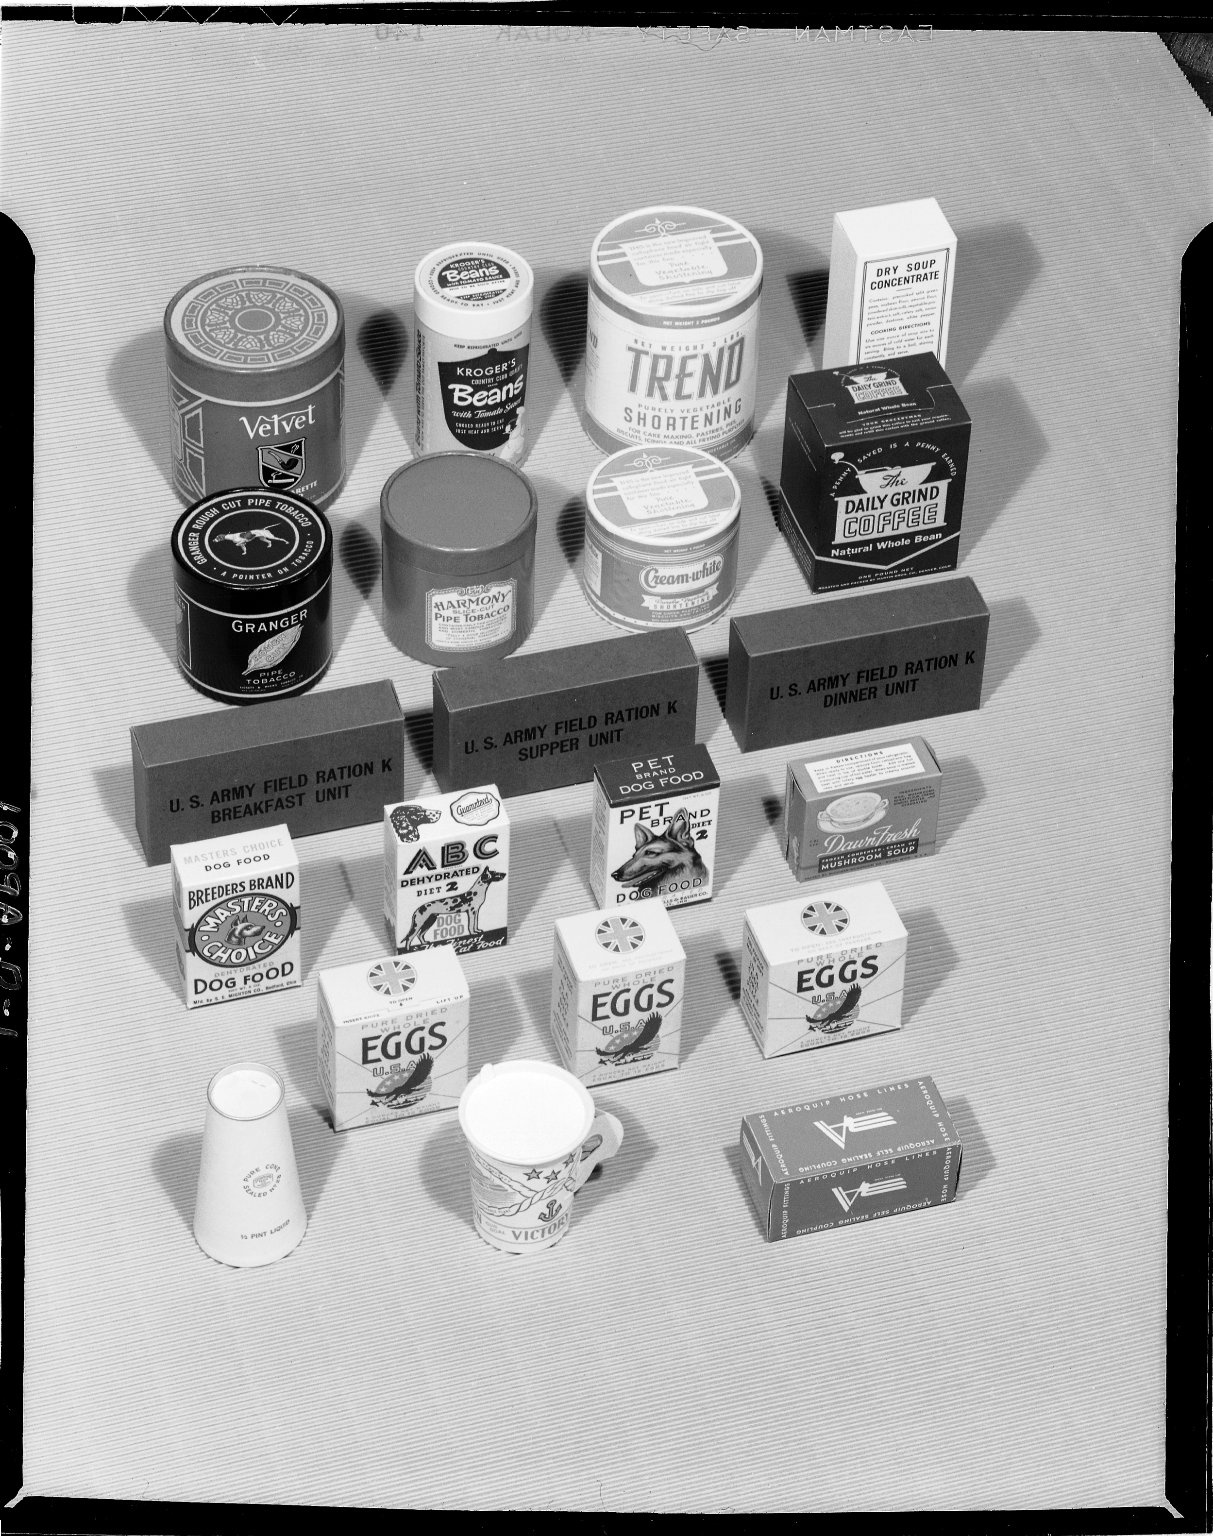 Sutherland Paper Company, paperboard cartons made including U.S. Army Field Ration K boxes